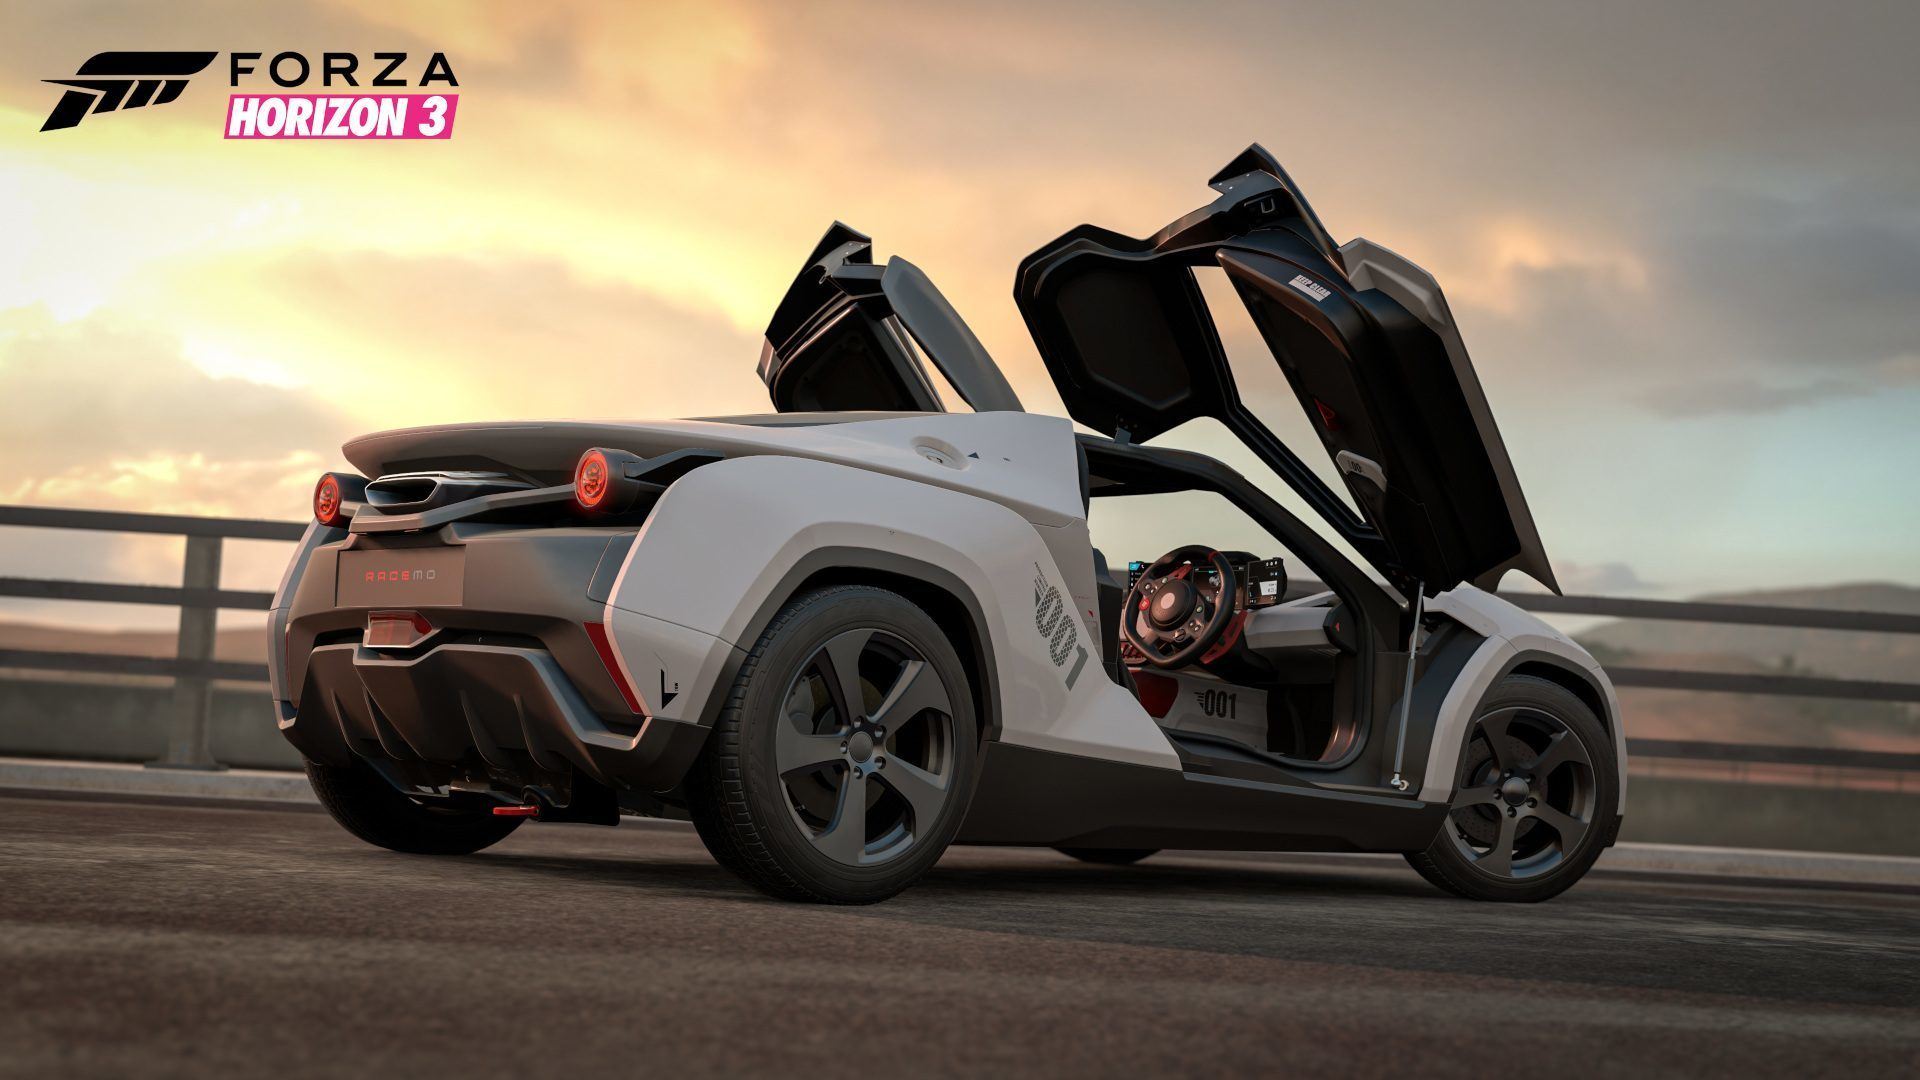 tamo racemo india 39 s newest sports car coming to forza horizon 3 today for free. Black Bedroom Furniture Sets. Home Design Ideas